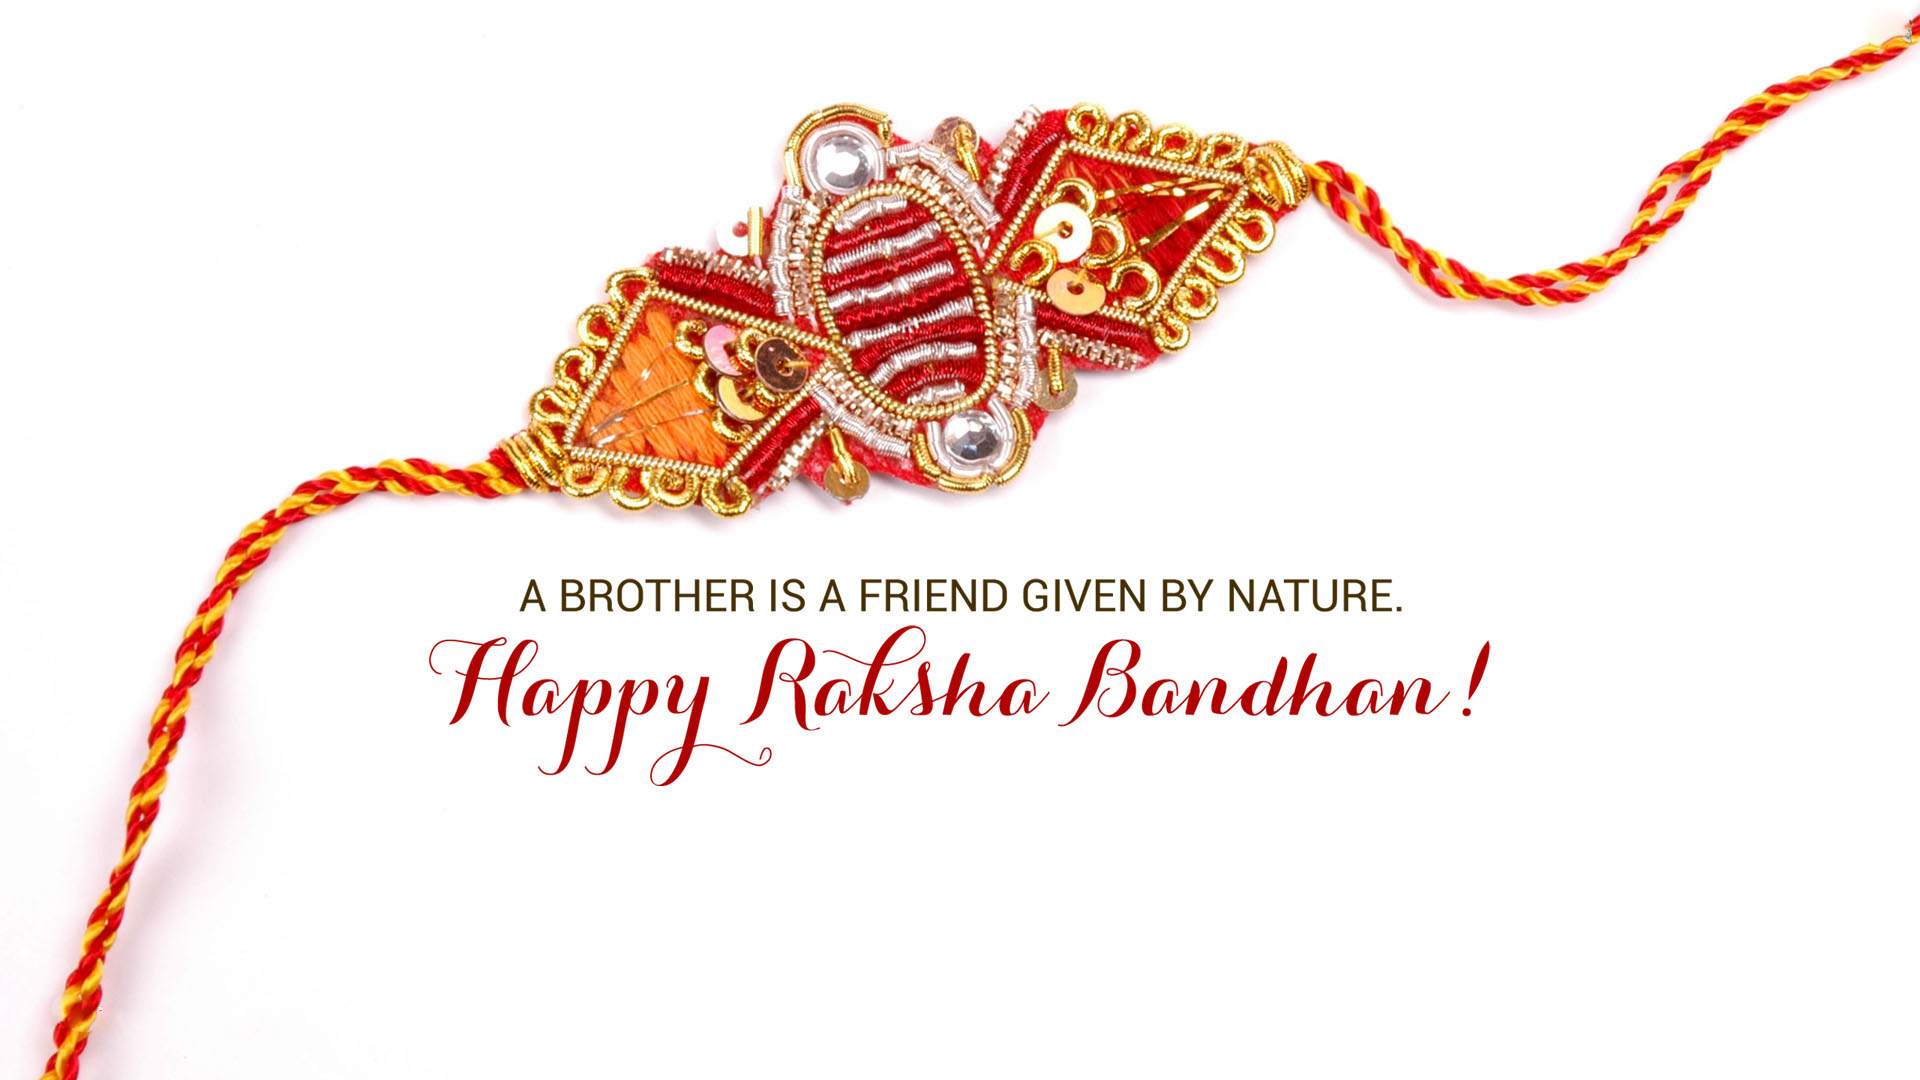 Raksha Bandhan 2019 Best wishes, quotes, greetings, messages, photos, gif images, wallpapers for Whatsapp and Facebook status